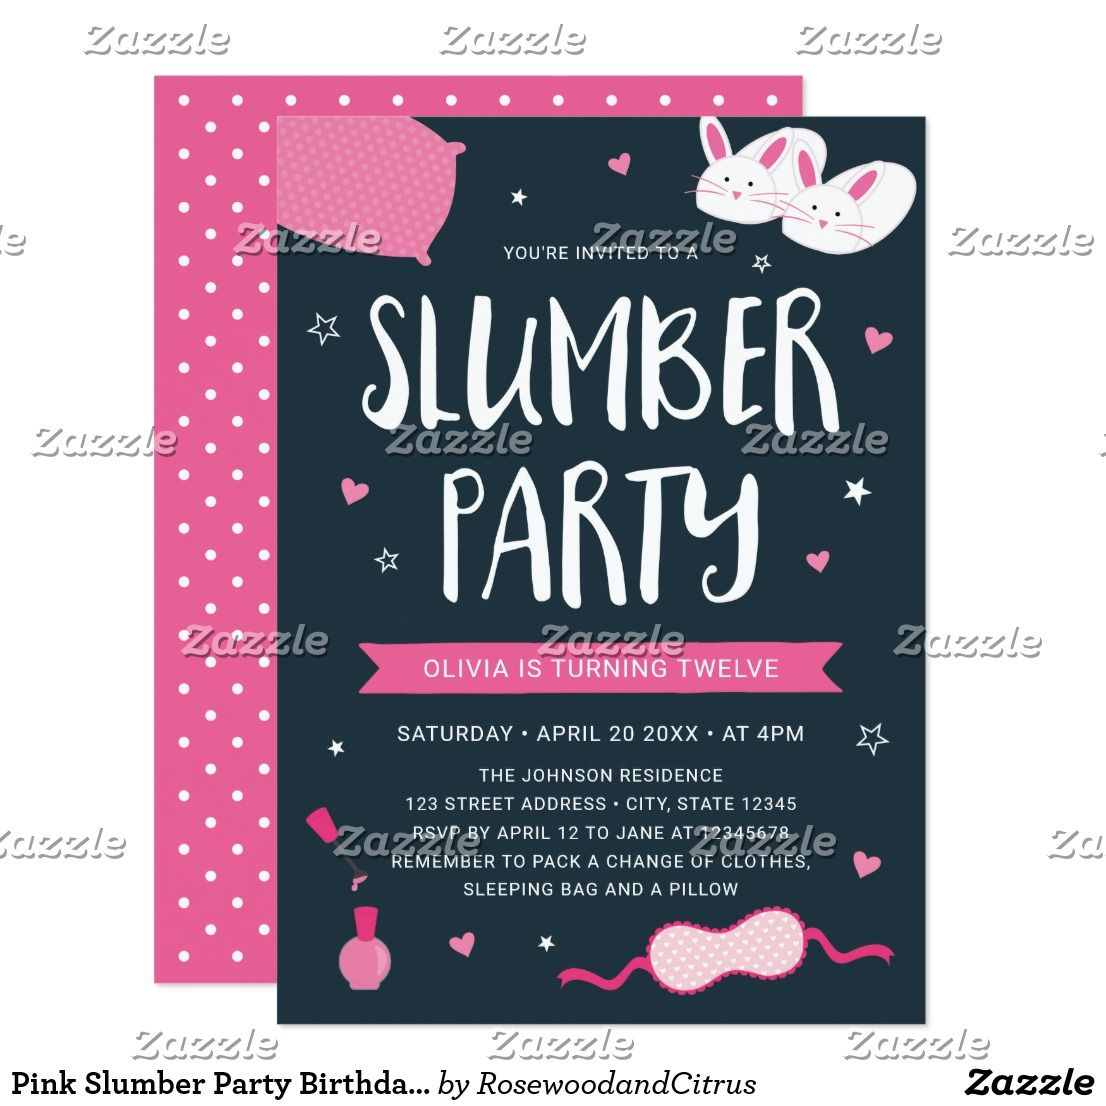 Pink Slumber Party Birthday Invitation Invite Friends To A With This Cute Featuring Eye Mask Nail Polish